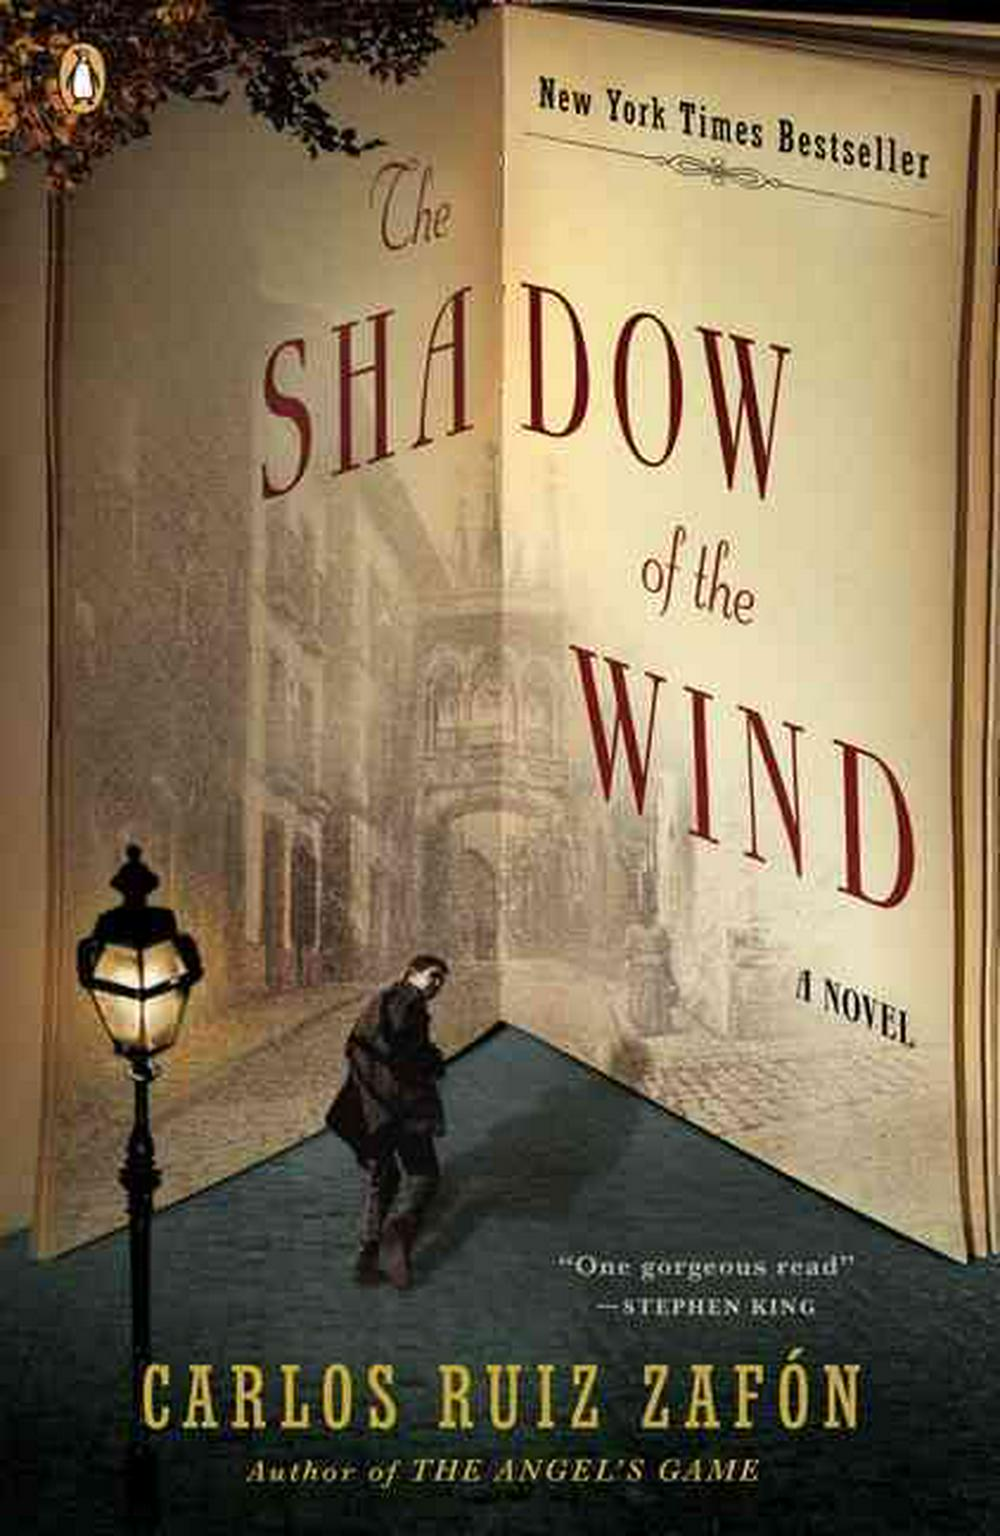 Shadow of the Wind by Carlos Ruiz Zafon, ISBN: 9780143034902